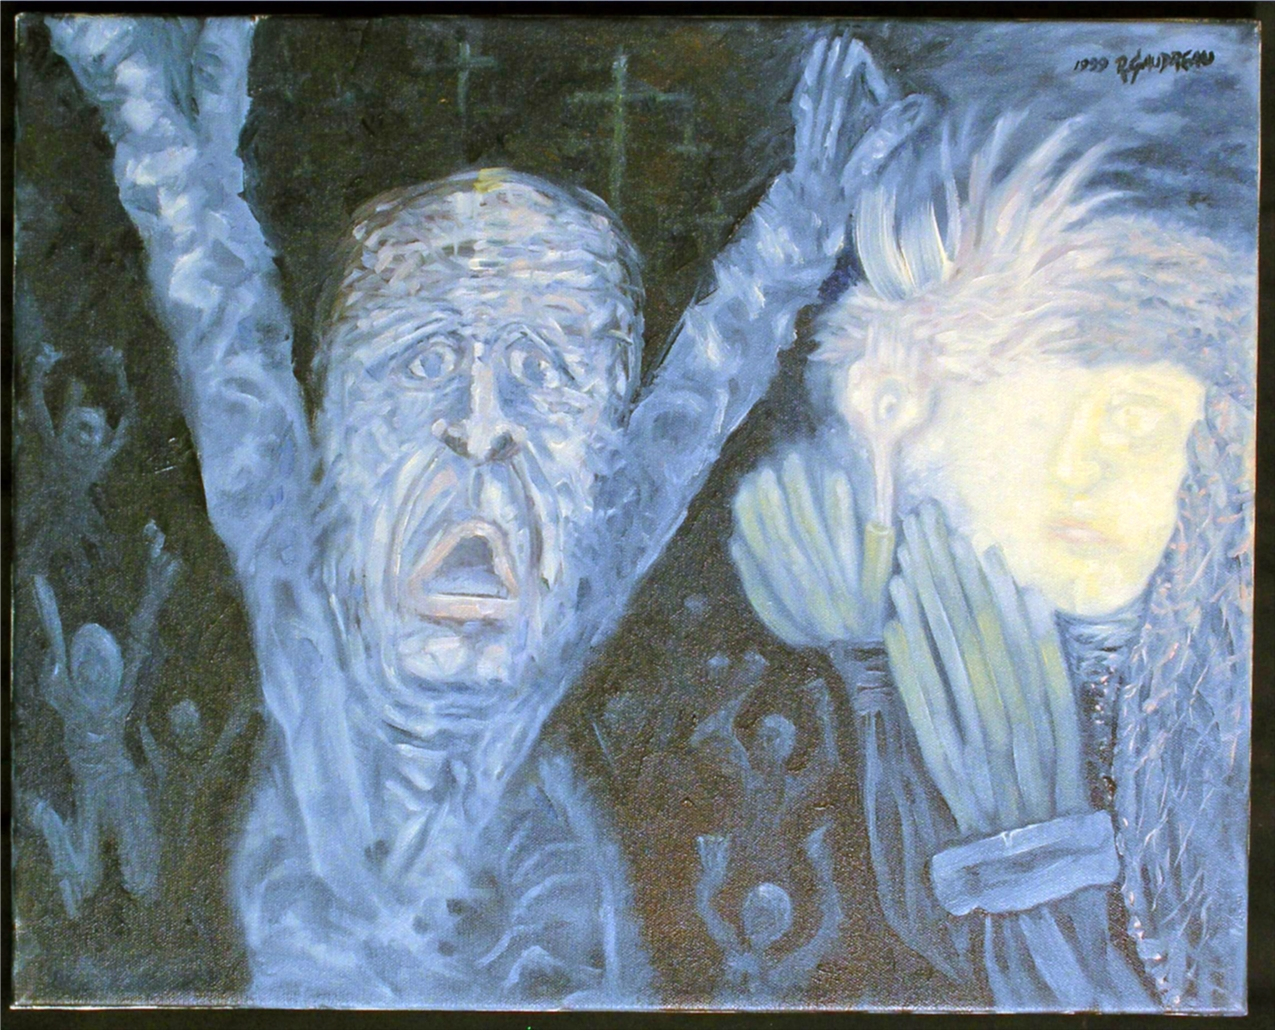 Fear of the Dark 1999 oil on canvas 16 x 20 inches